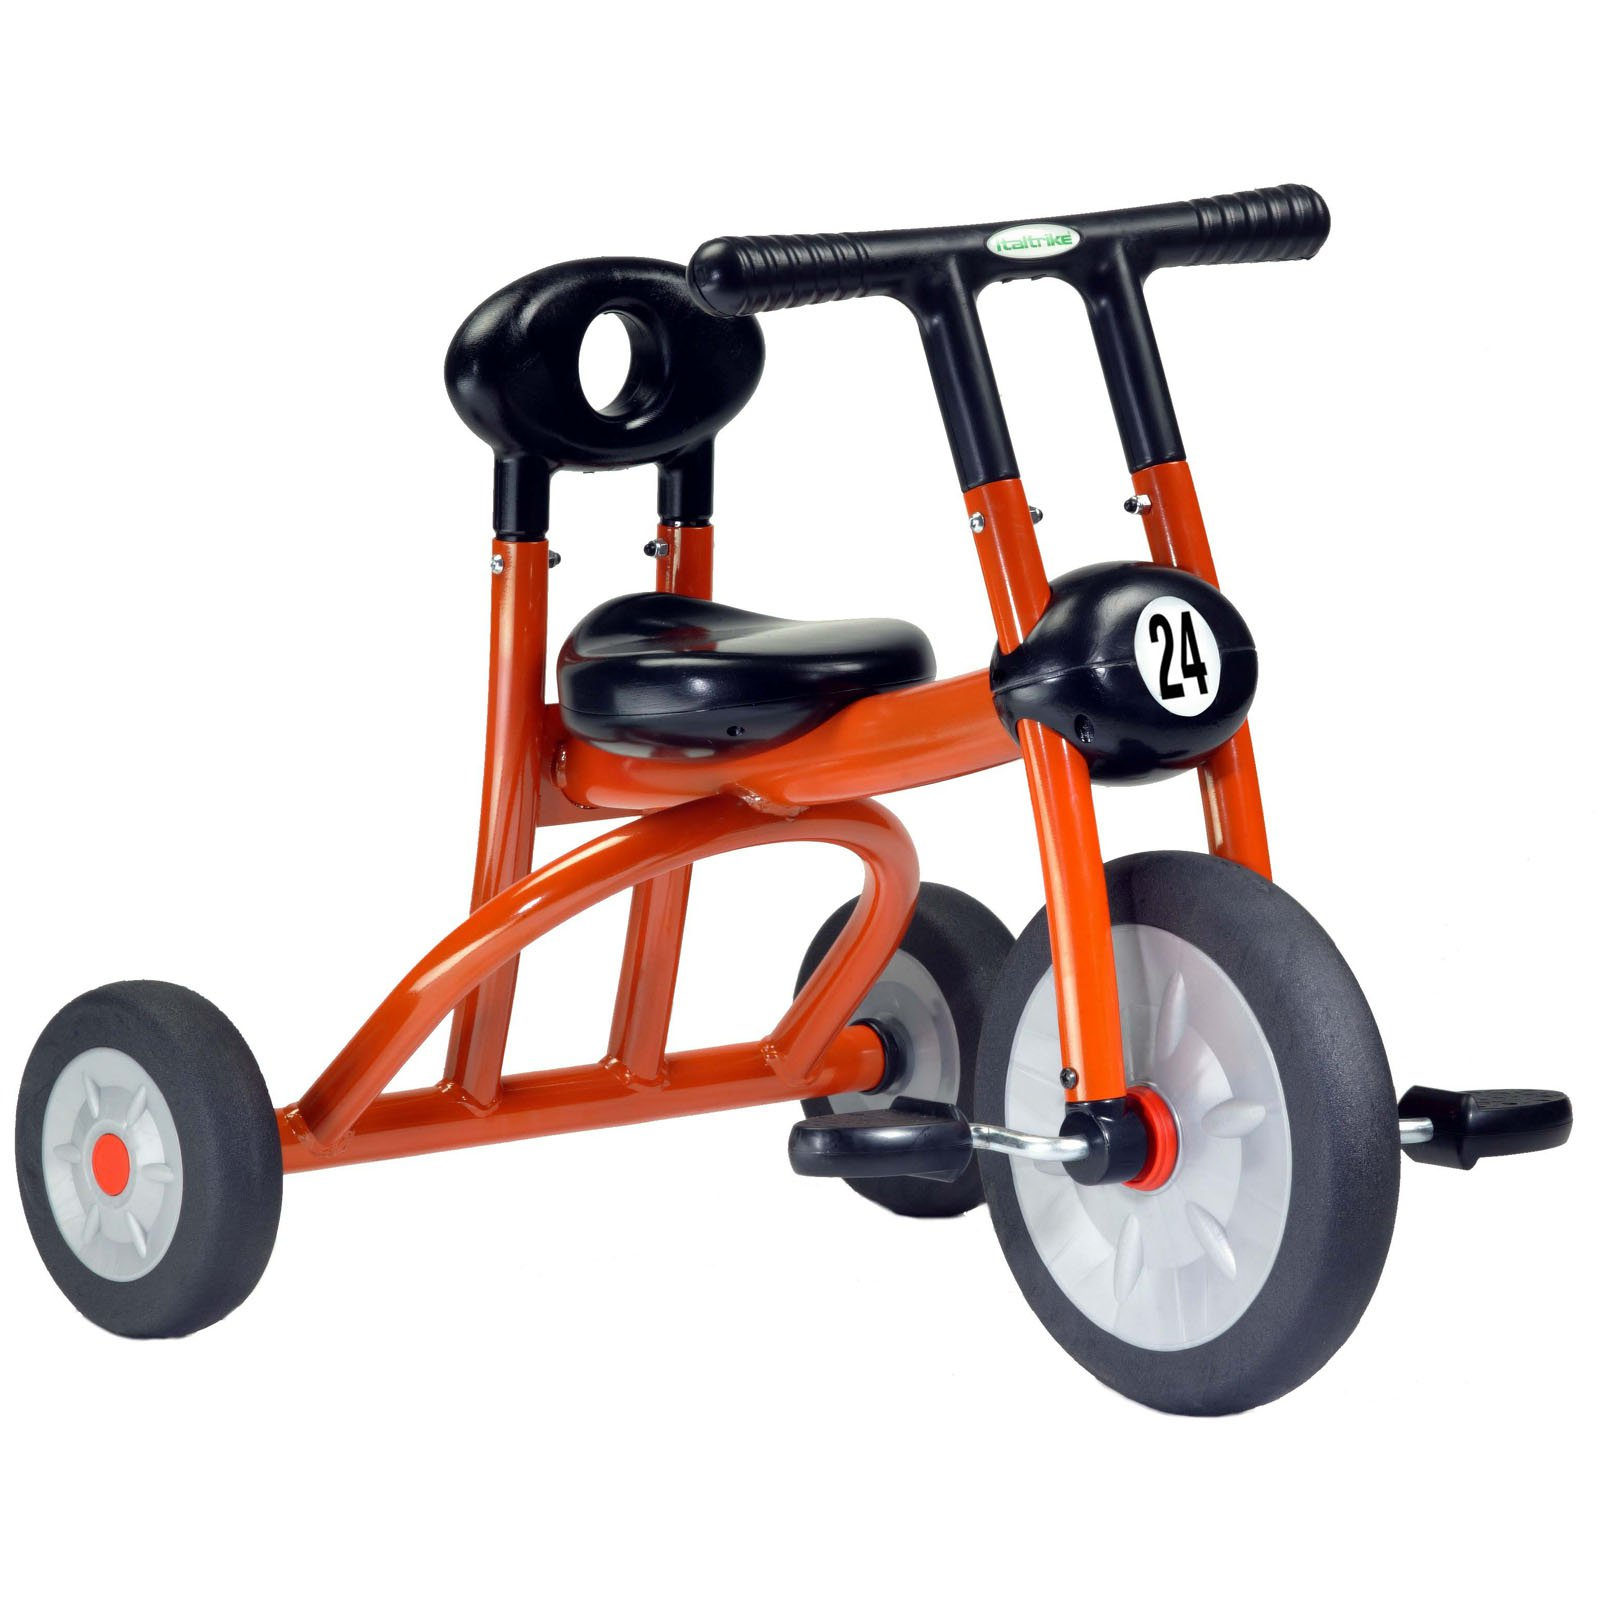 Italtrike Pilot 200 Series Tricycle